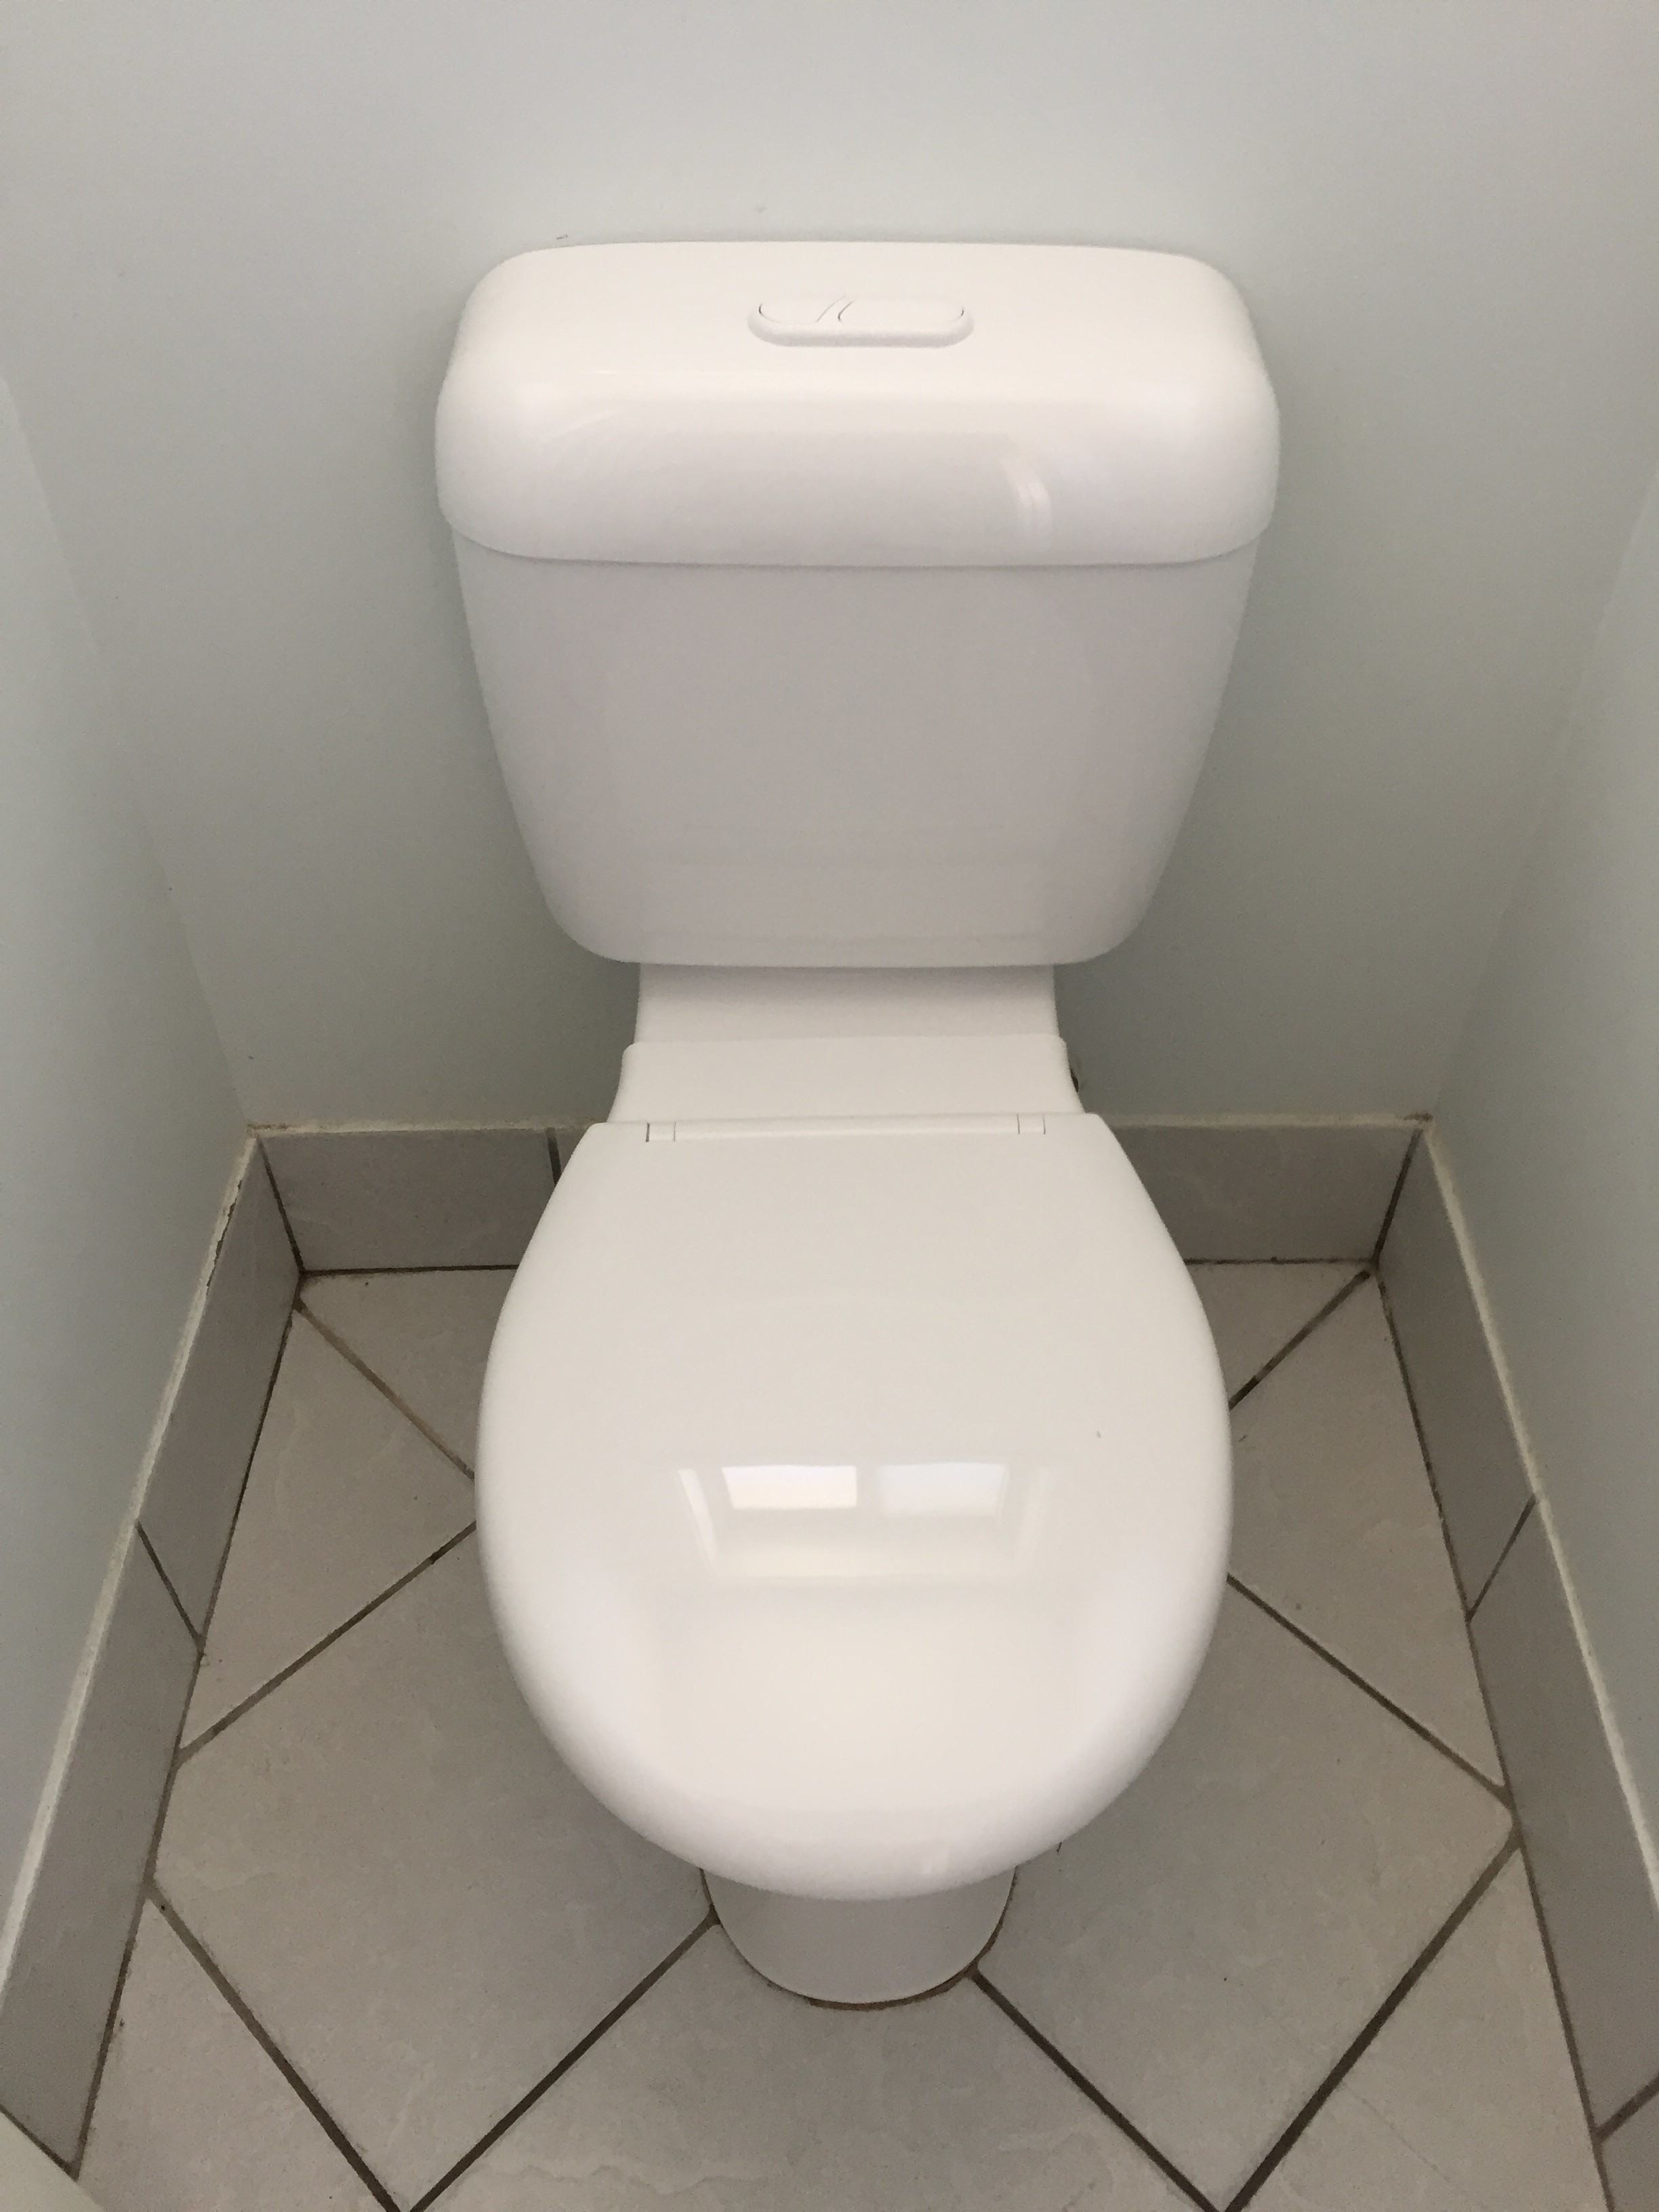 Toilet Repair – Cistern Change